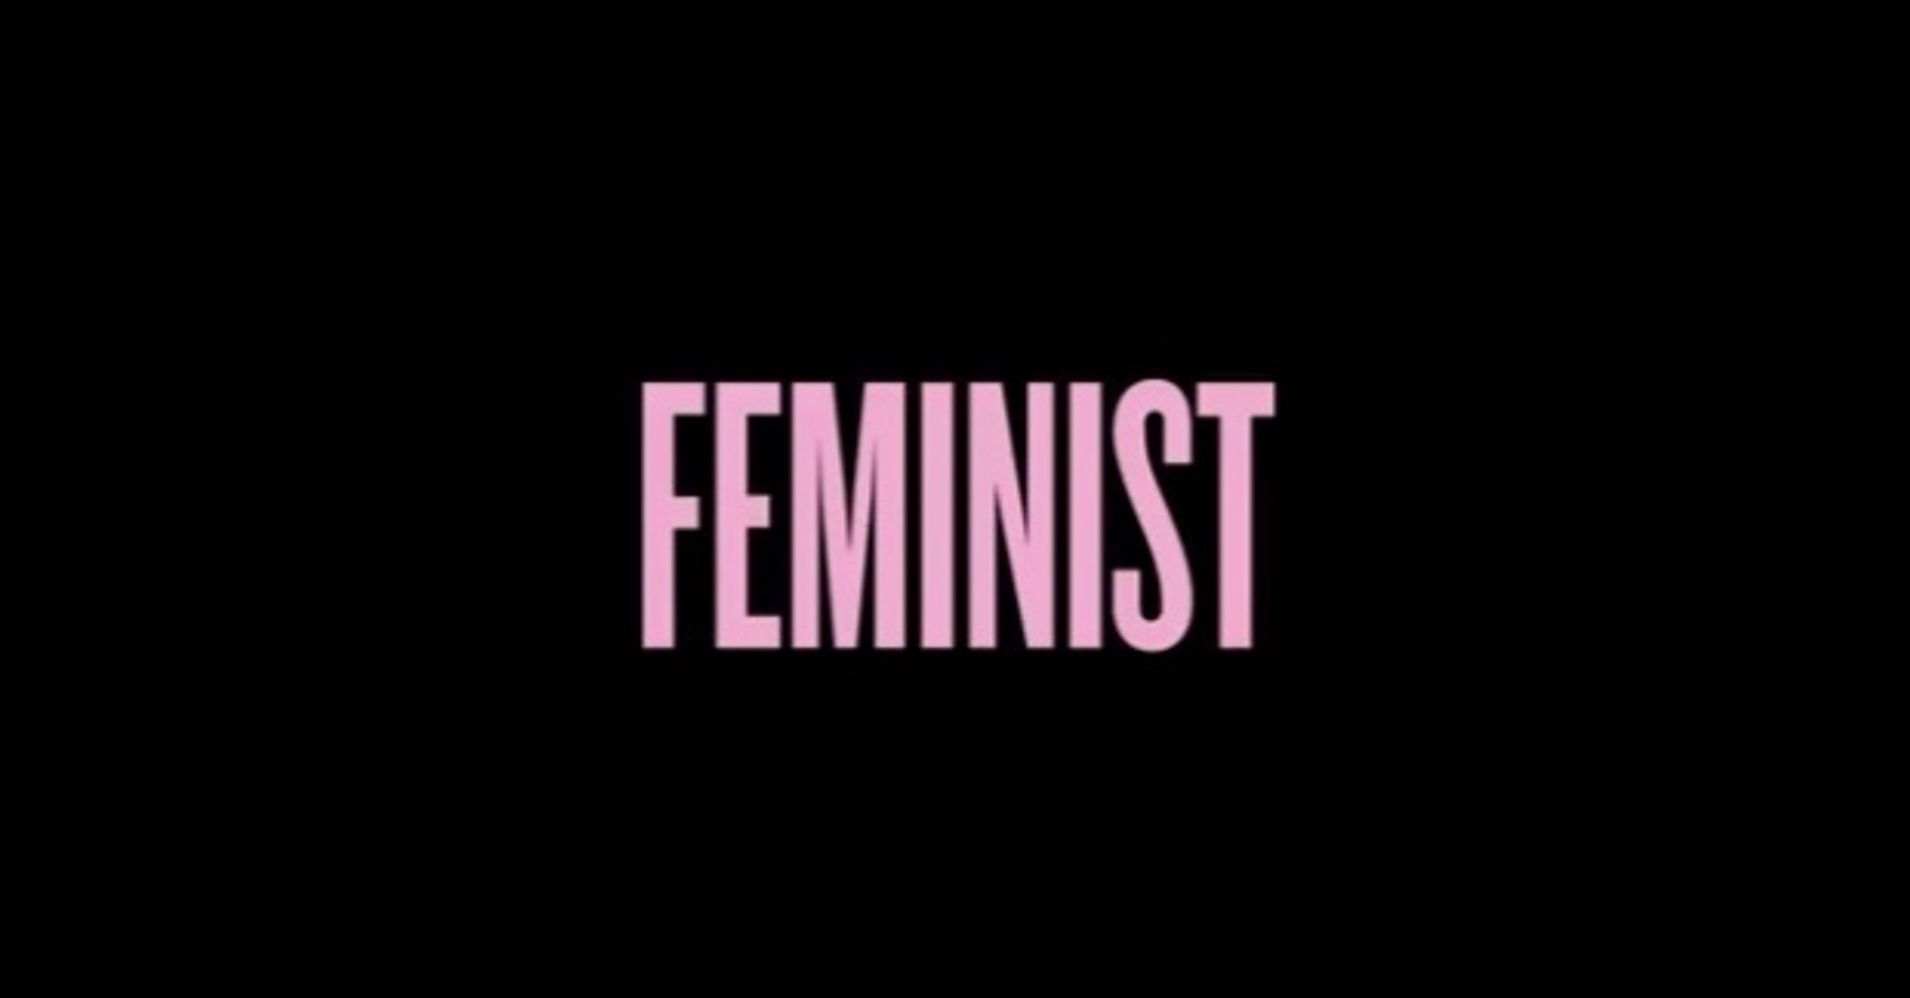 theme of feminism in the women Essays and criticism on feminism in literature - women in the 19th century we've broken down the chapters, themes rendall, jane introduction to the origins of modern feminism: women in britain, france and the.